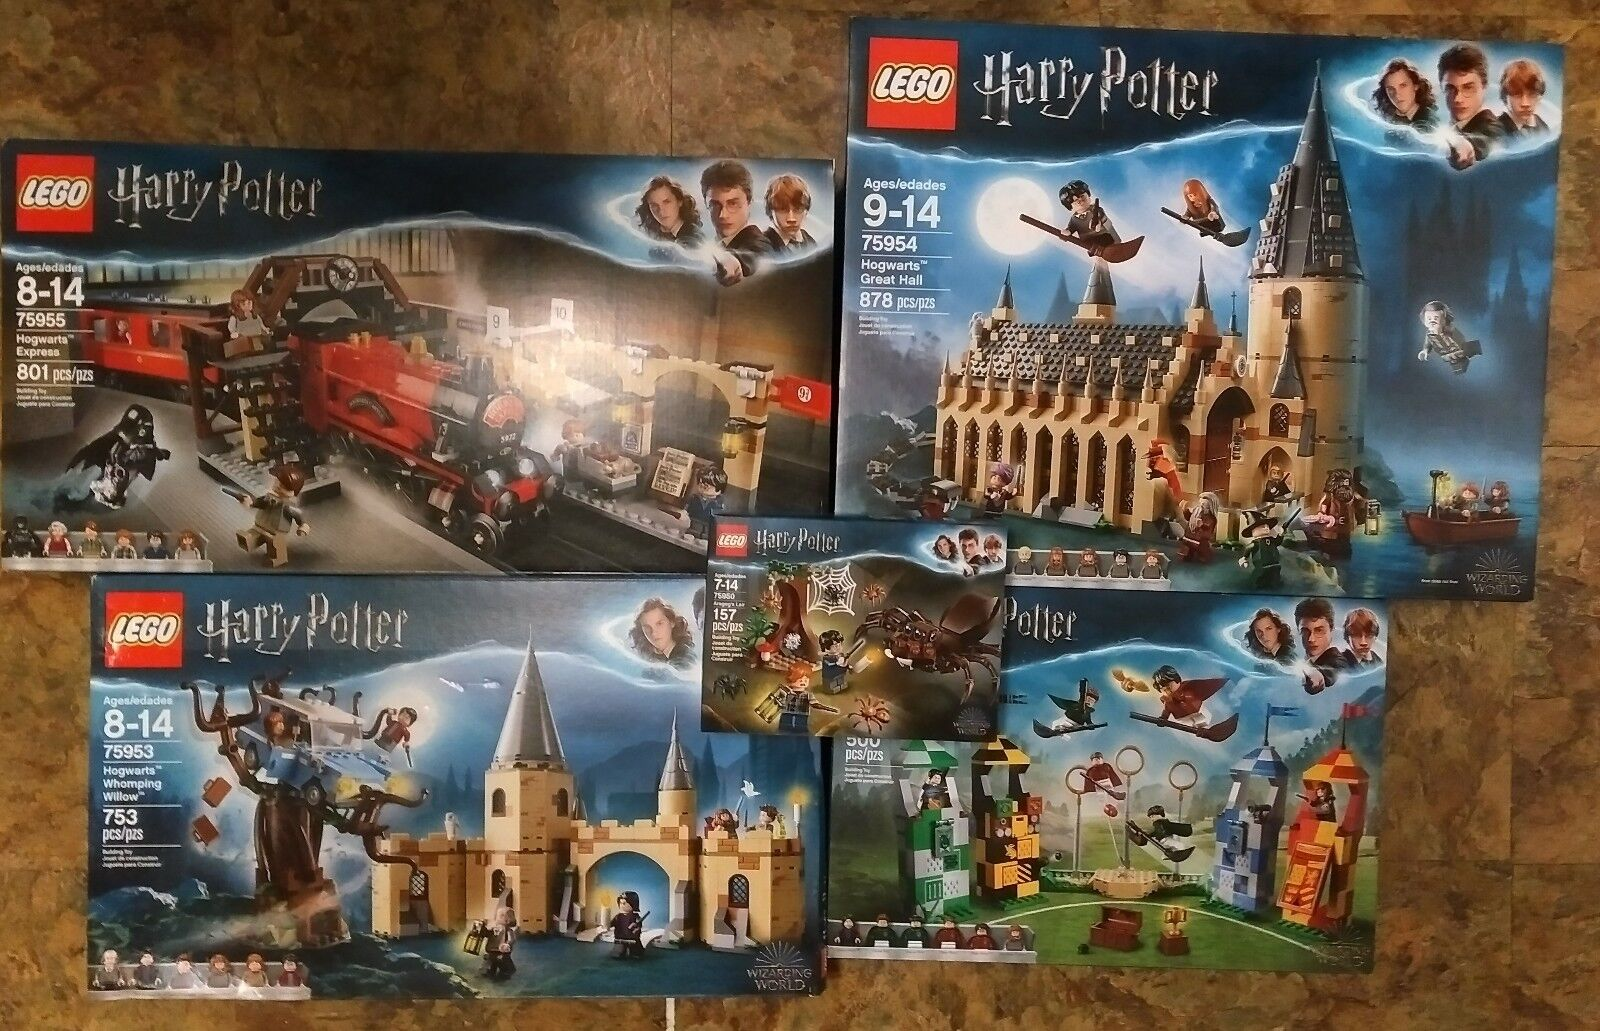 LEGO HARRY POTTER WIZARDING WORLD ALL 5 SETS 75950 75953 75954 75955 75956